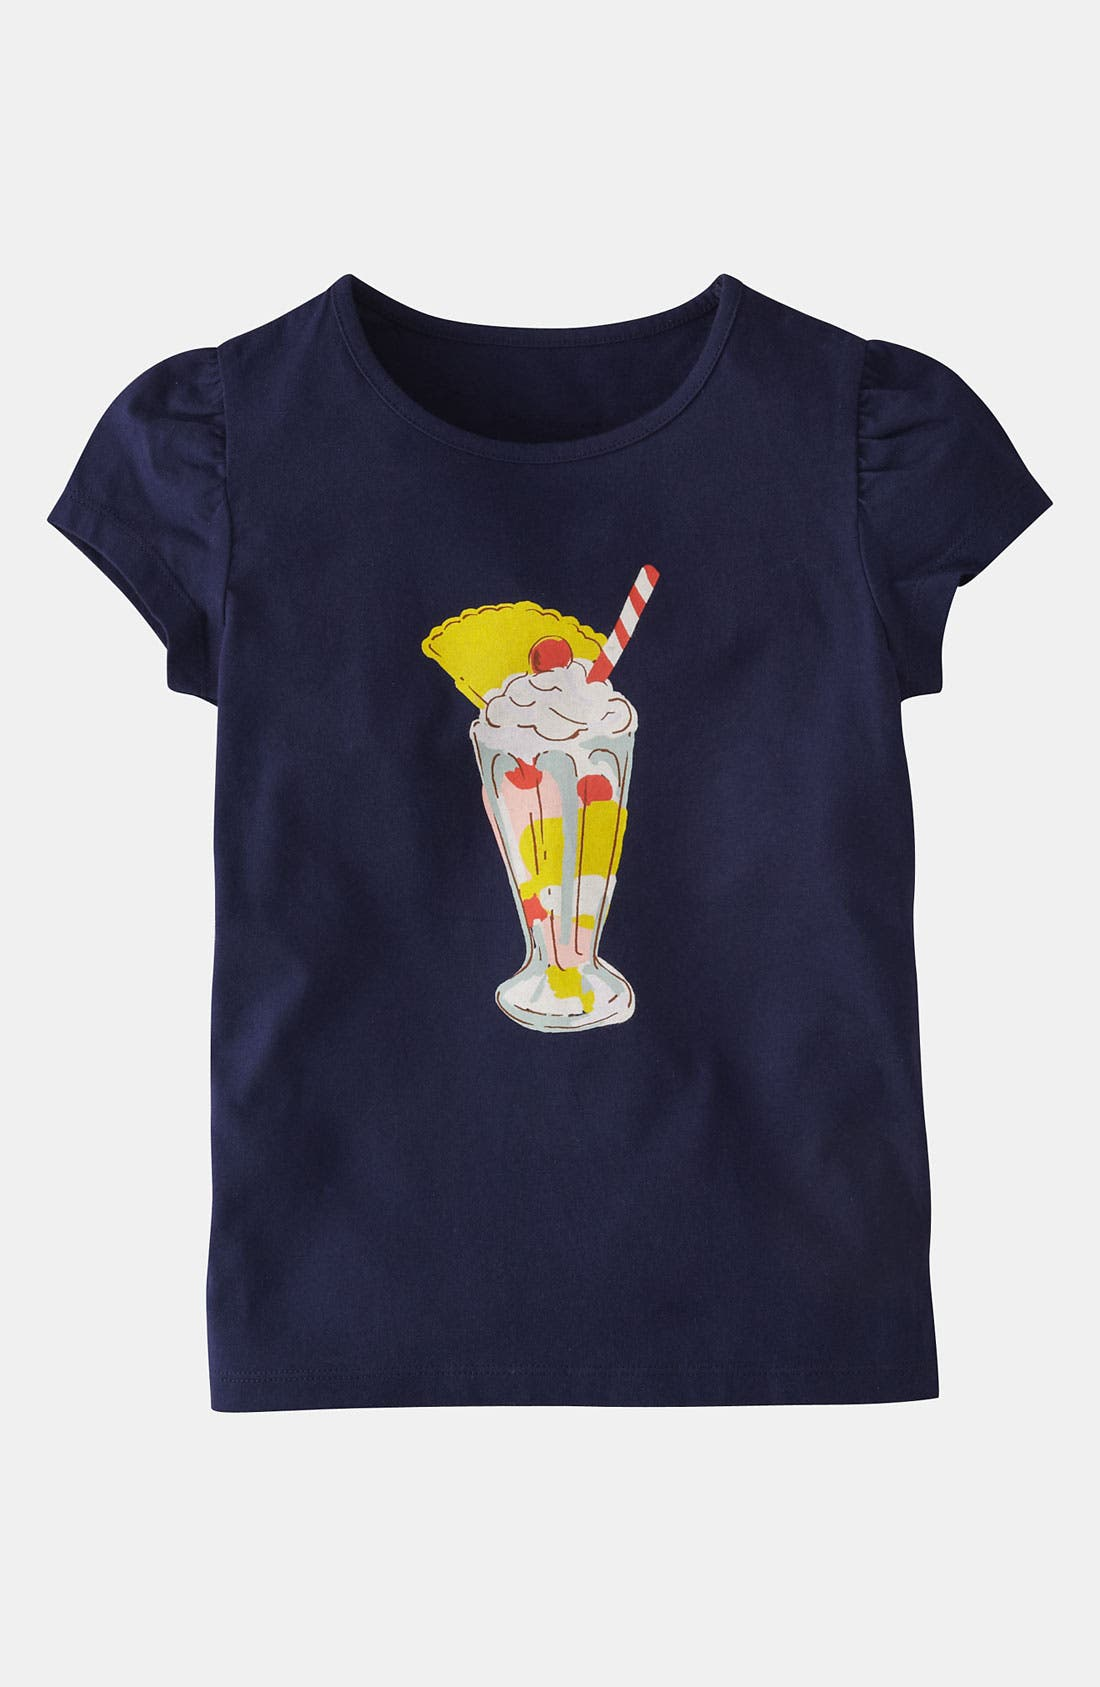 Main Image - Mini Boden 'Scrummy Print' Tee (Toddler)